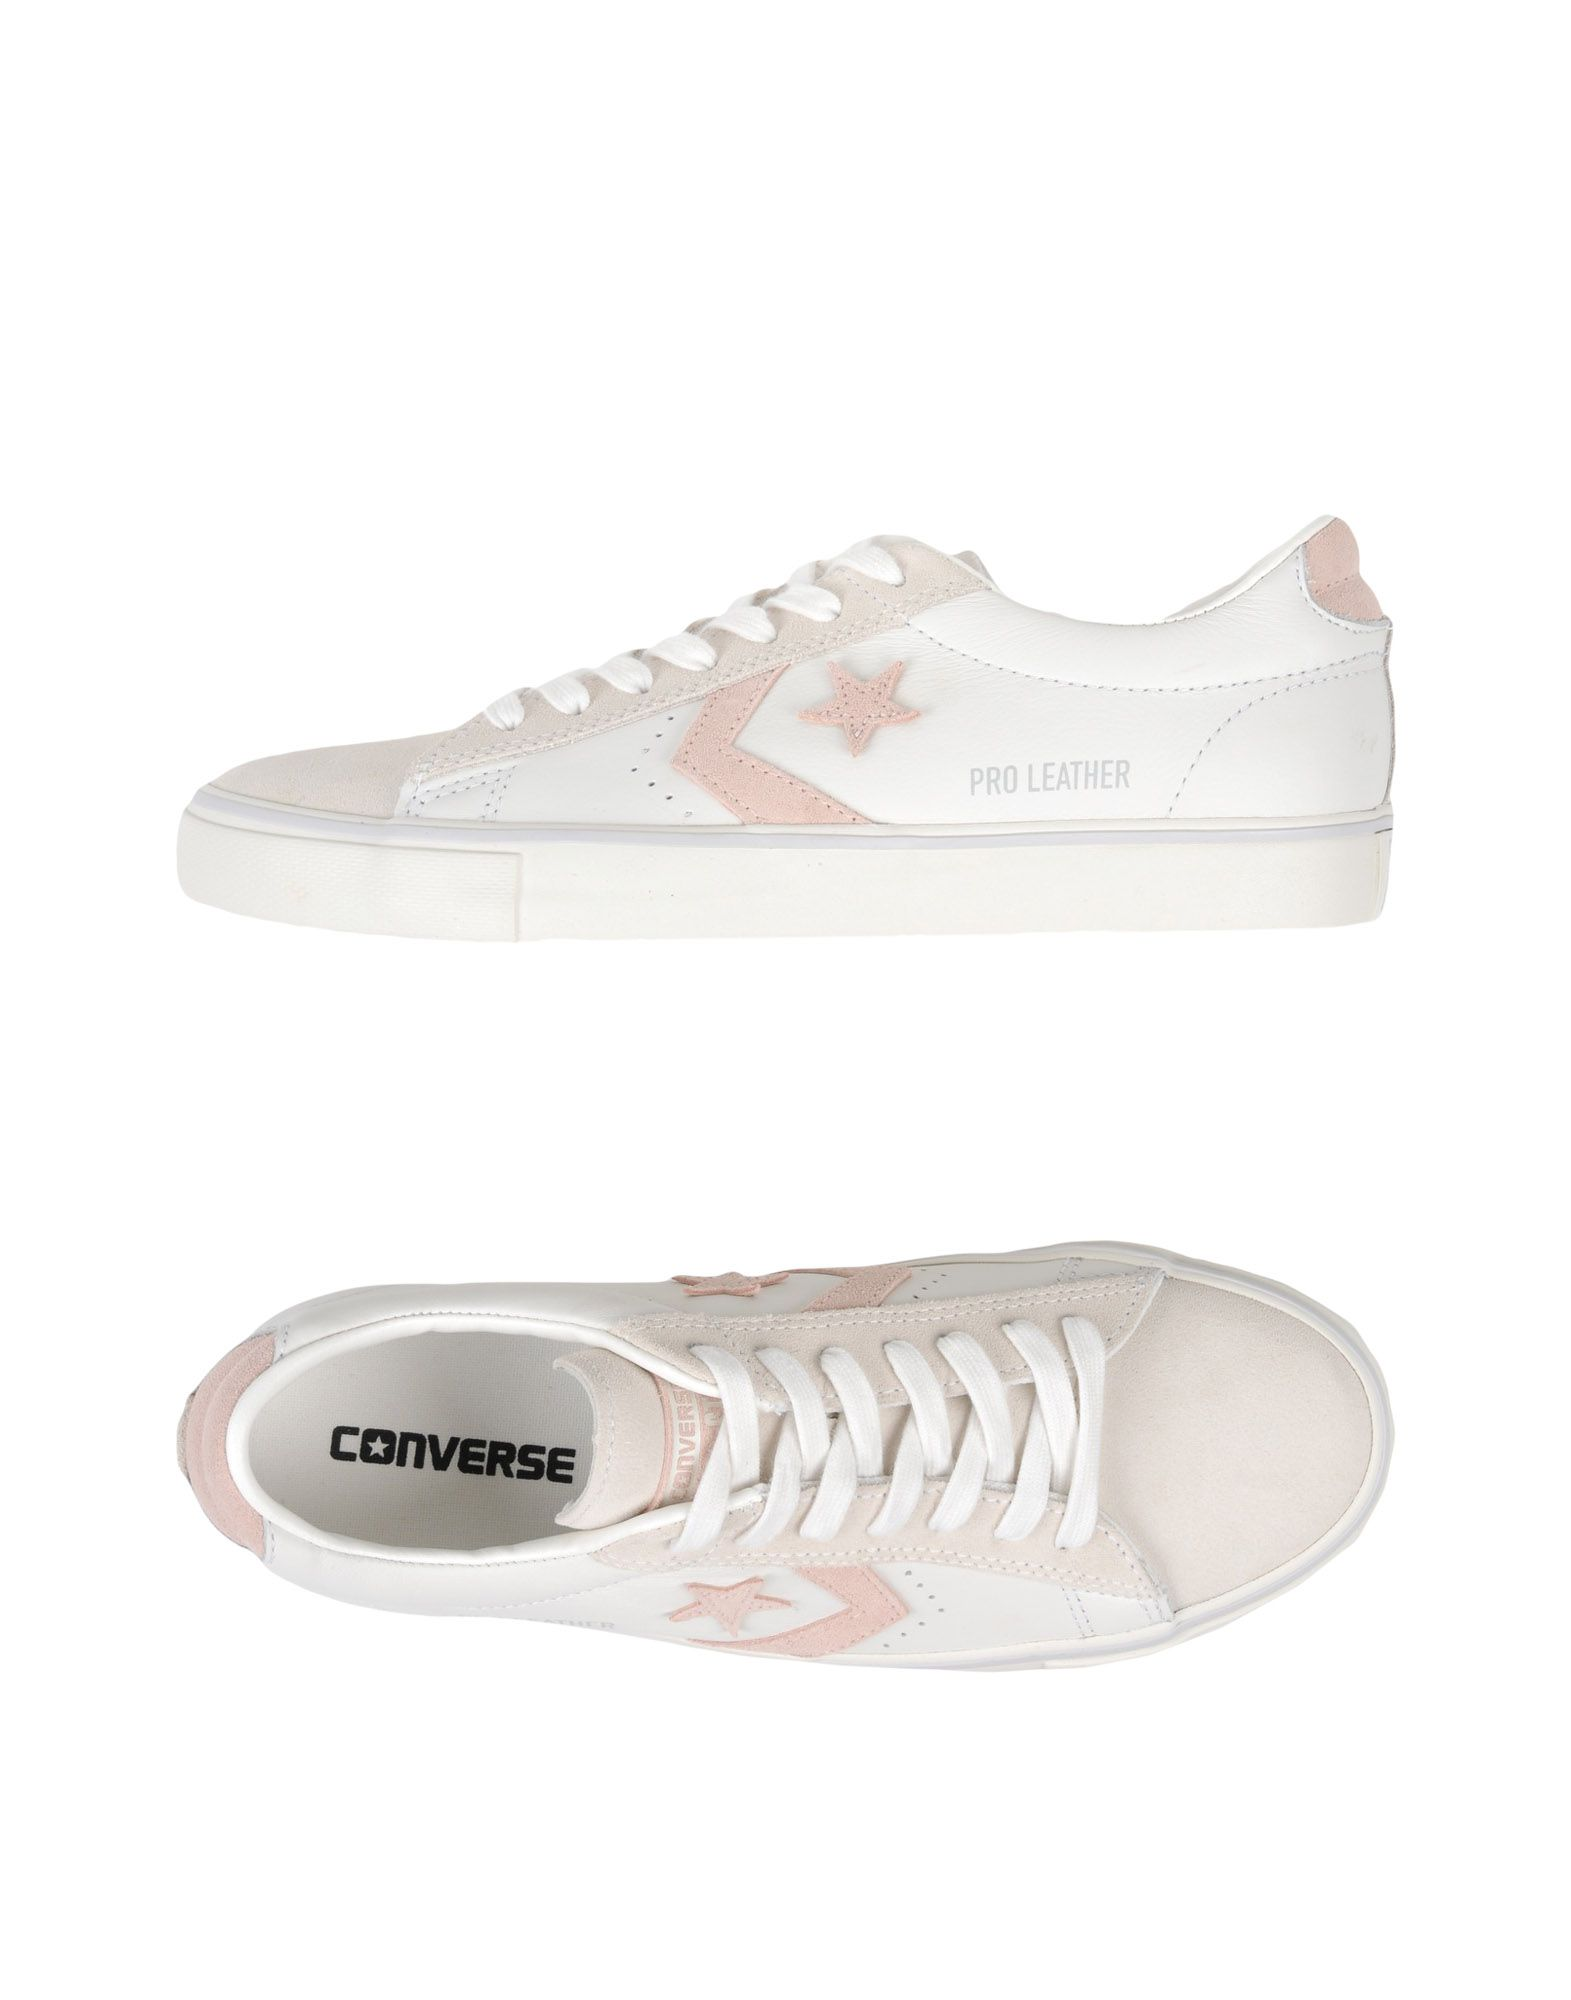 Converse All Star Pro Leather Vulc Ox Leather/Suede  11437701UP Gute Qualität beliebte Schuhe